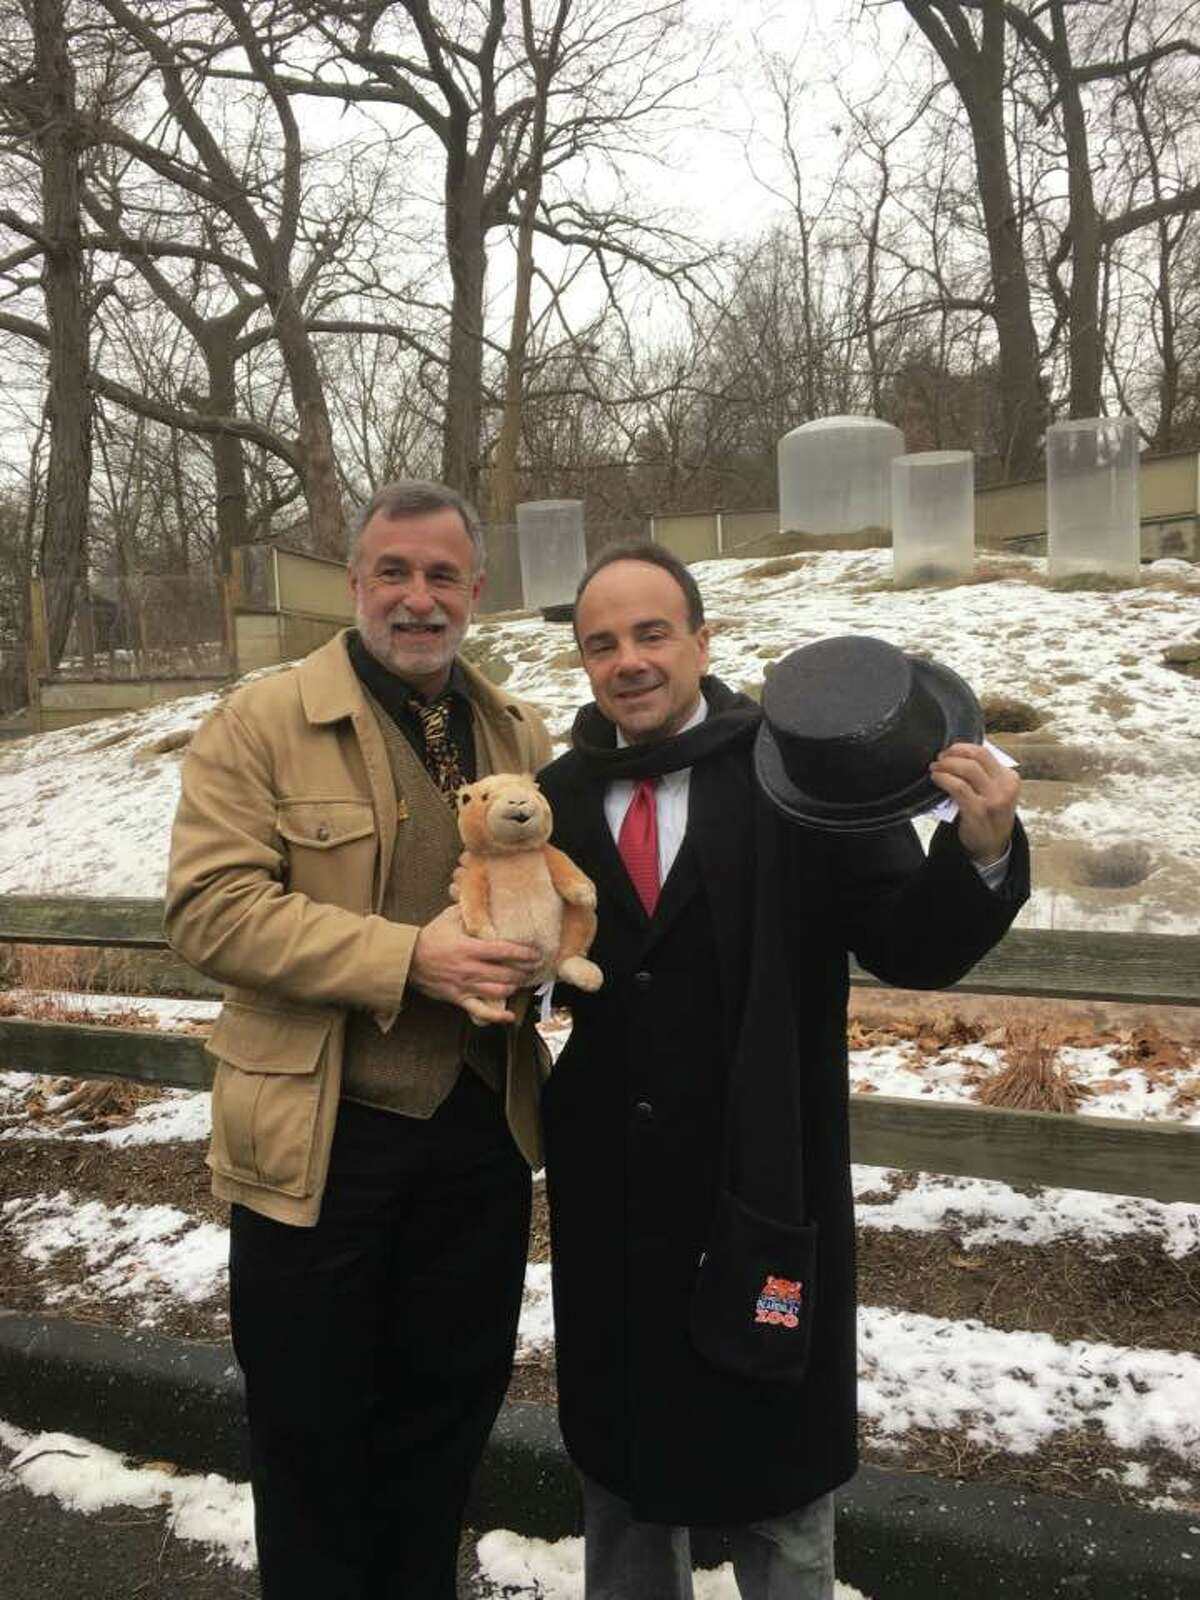 Beardsley Bart, Connecticut's own Prognosticating Prairie Dog, came out on Feb. 2, 2017 to share his weather forecast with a small gathering of friends, including Gregg Dancho, director of Connecticut's Beardsley Zoo and Bridgeport Mayor Joseph P. Ganim.